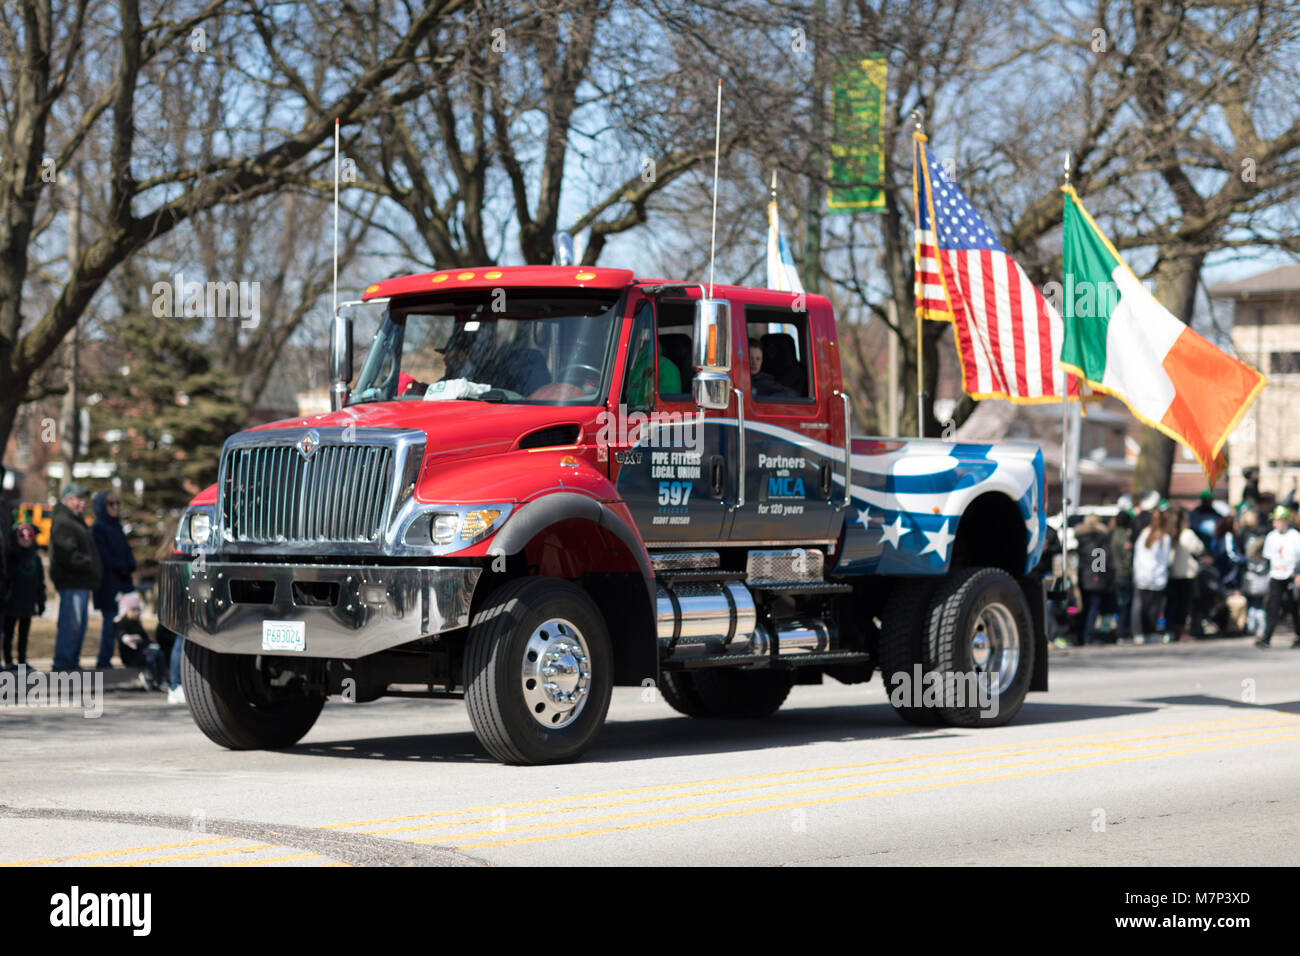 Chicago, Illinois, USA - March 11, 2018, The South Side Irish Parade is a cultural and religious celebration from - Stock Image